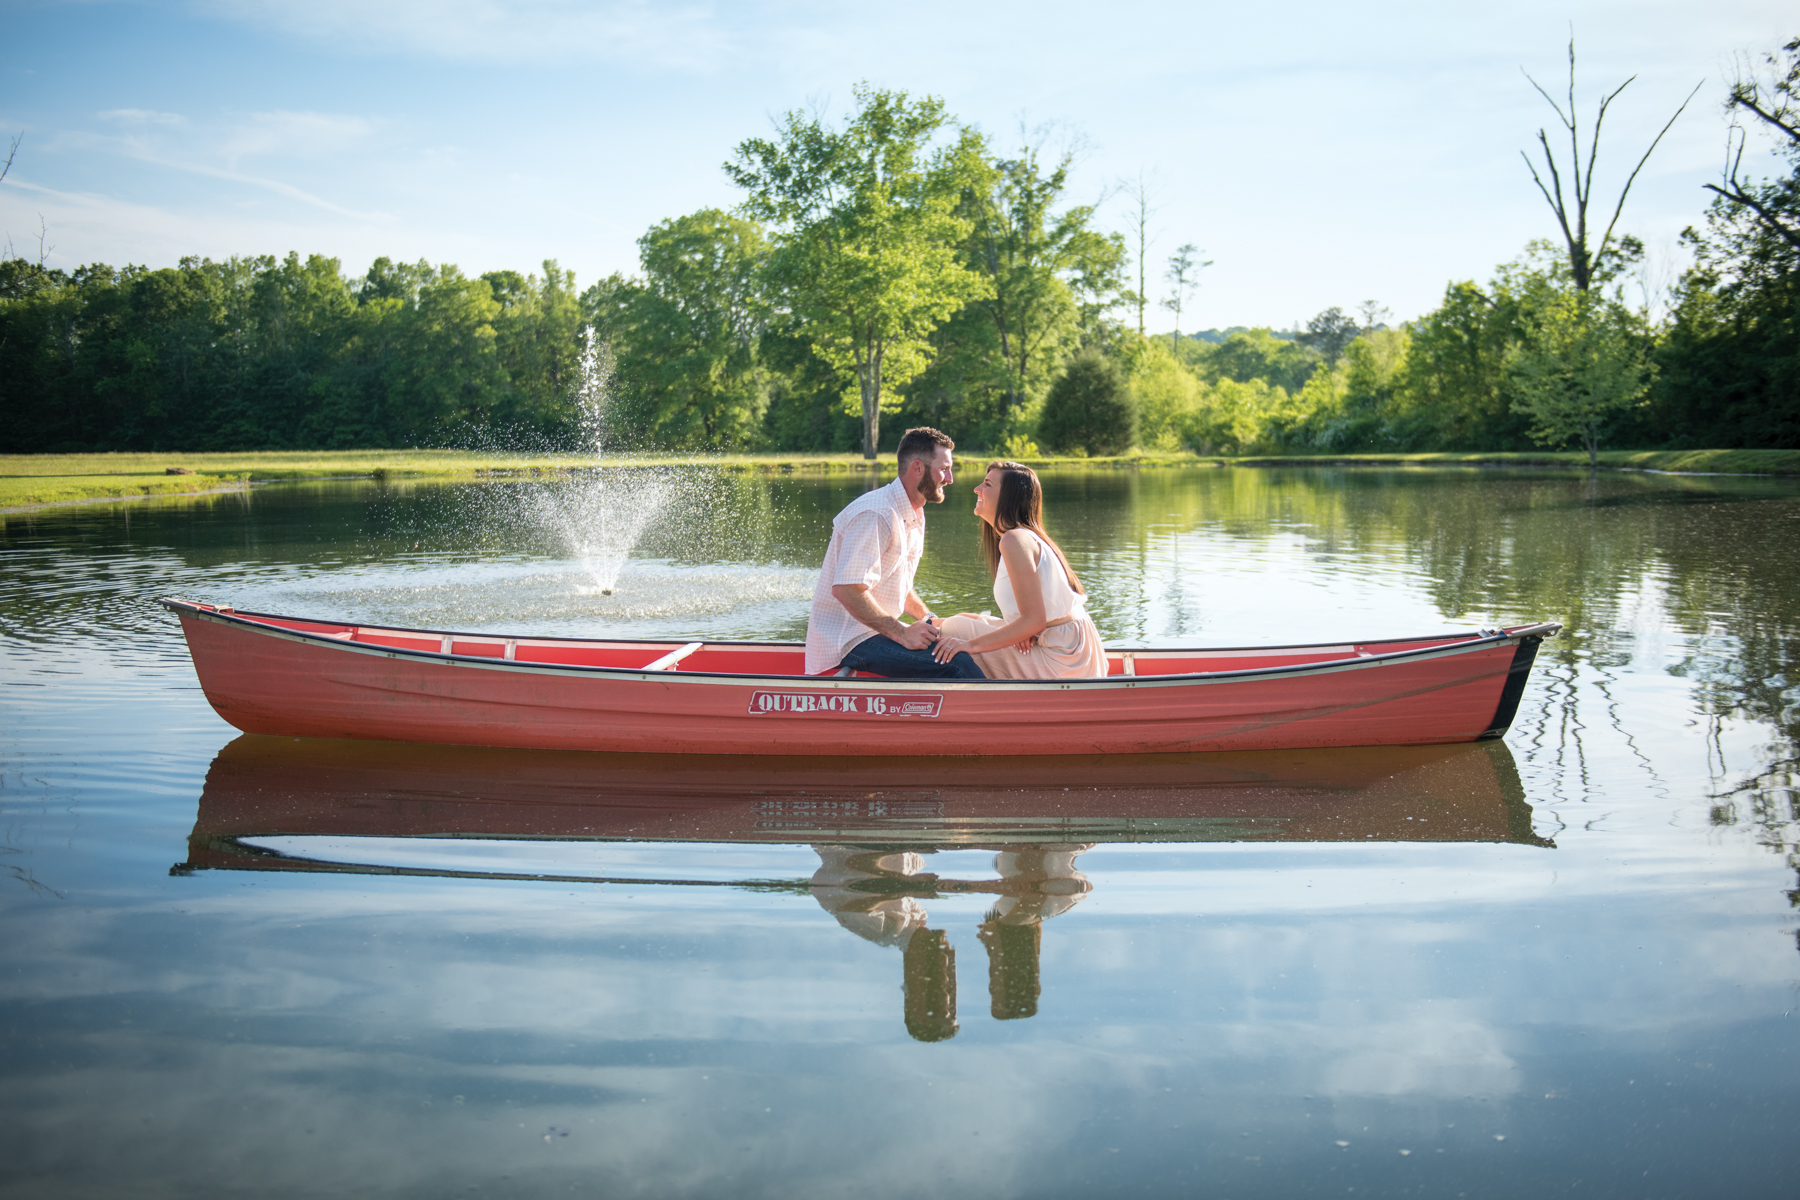 canoe, canoe engagement, boat engagement, chattanooga engagement, engagement session ideas, engagement session poses, chattanooga engagement photos, chattanooga engagement locations, Everlee farms, everlee farms chattanooga, engagement photography, engagement session, engagement phtotos,  chattanooga engagement photographer, chattanooga engagement, chattanooga wedding, chattanooga engagement session ideas, engagement session ideas